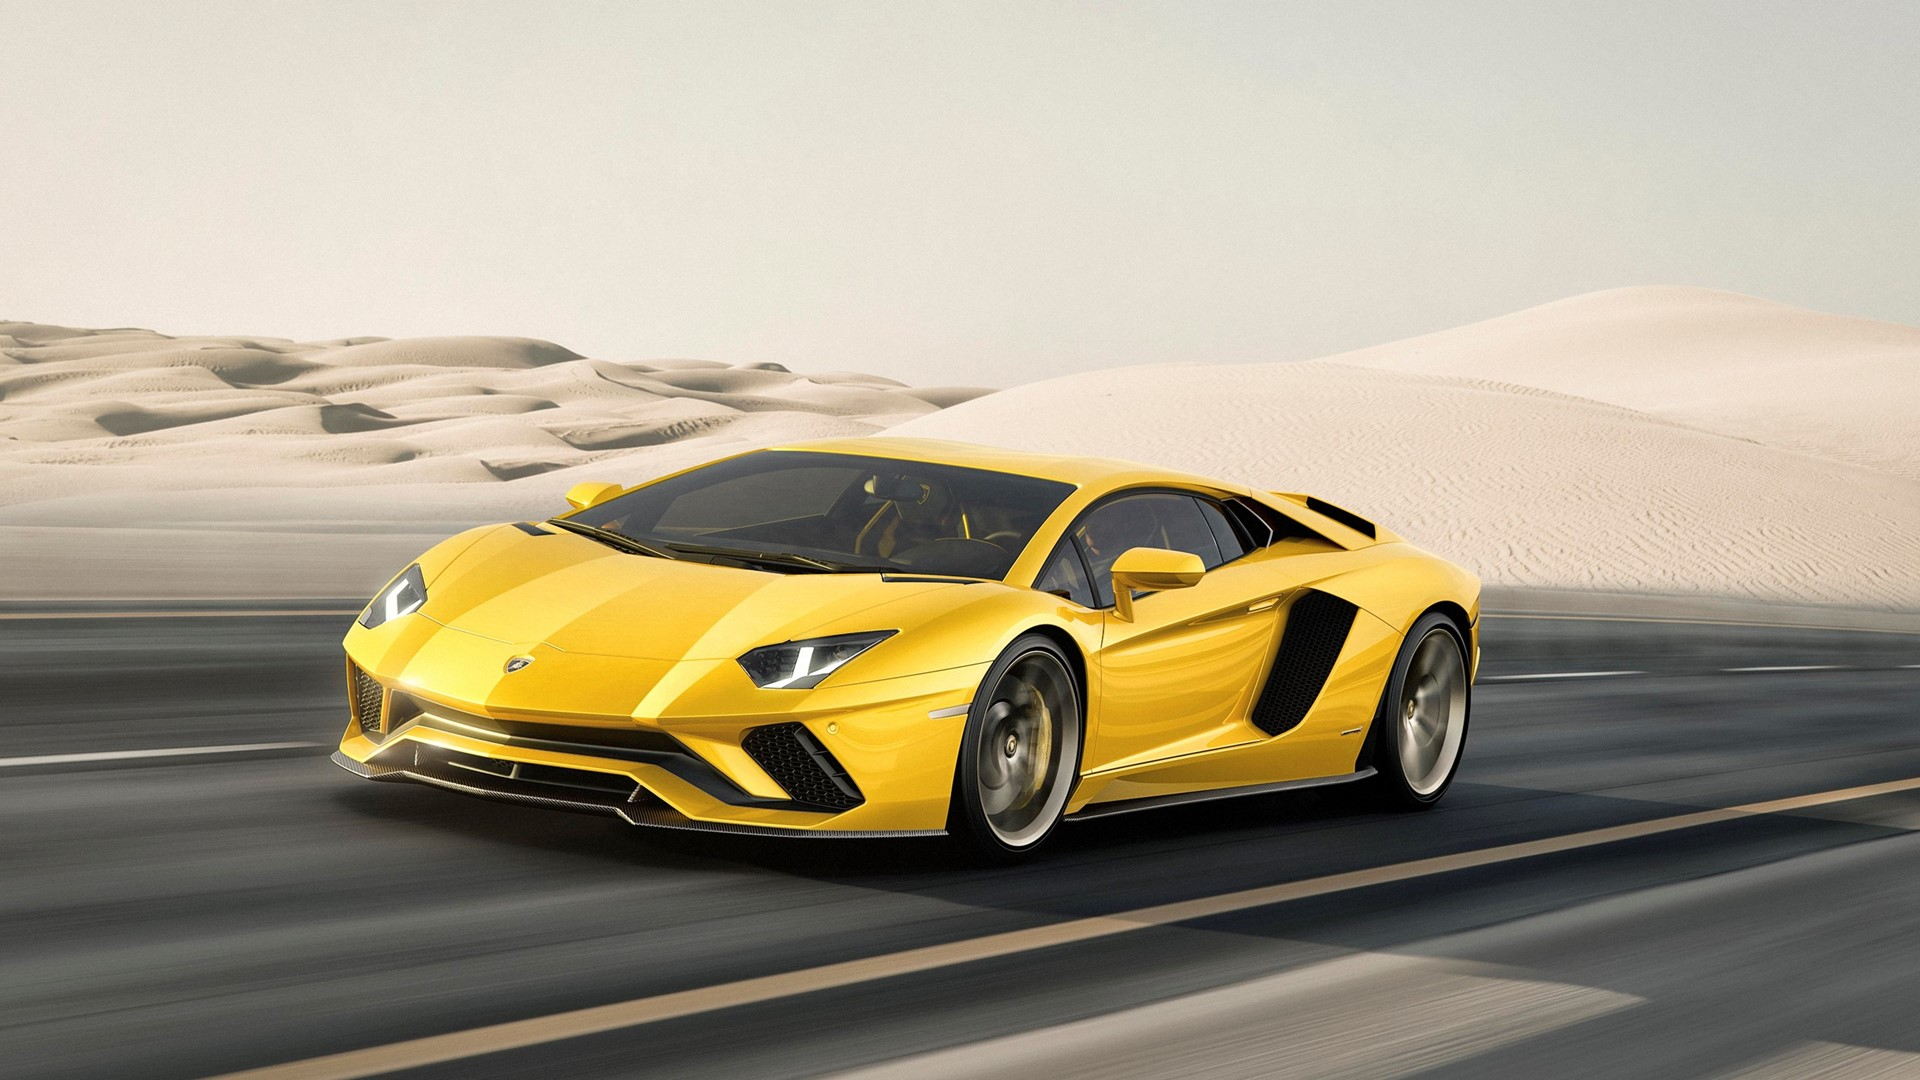 New production record: Automobili Lamborghini celebrates the 10,000th Aventador - Image 6